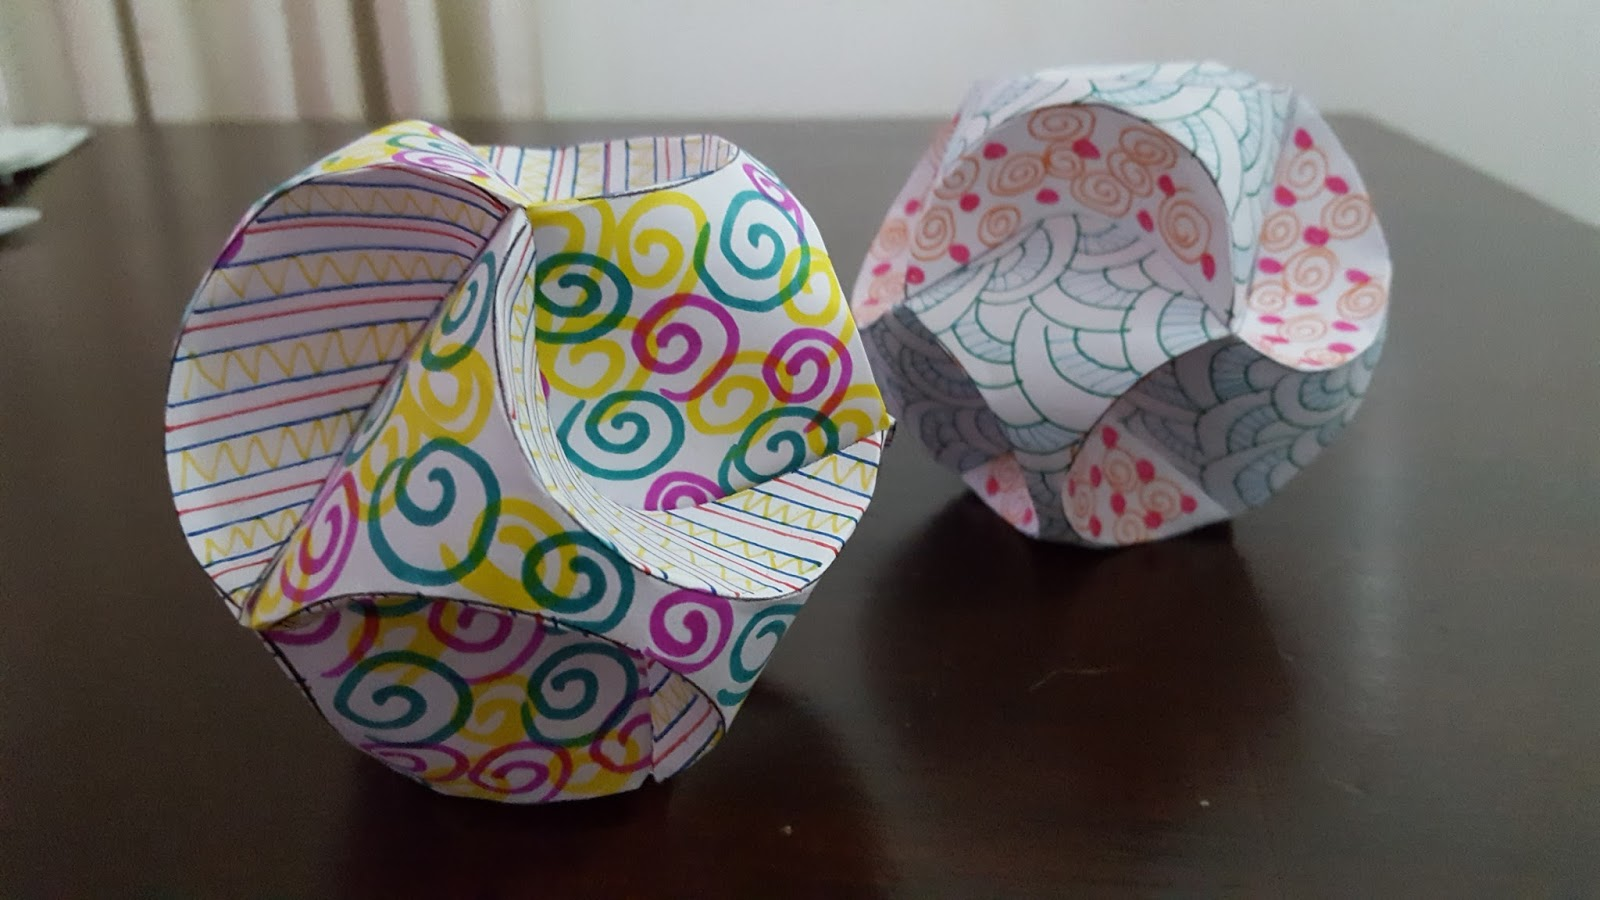 These Paper Globes Look Amazing And Will Be Great To Have As Decoration For Christmas